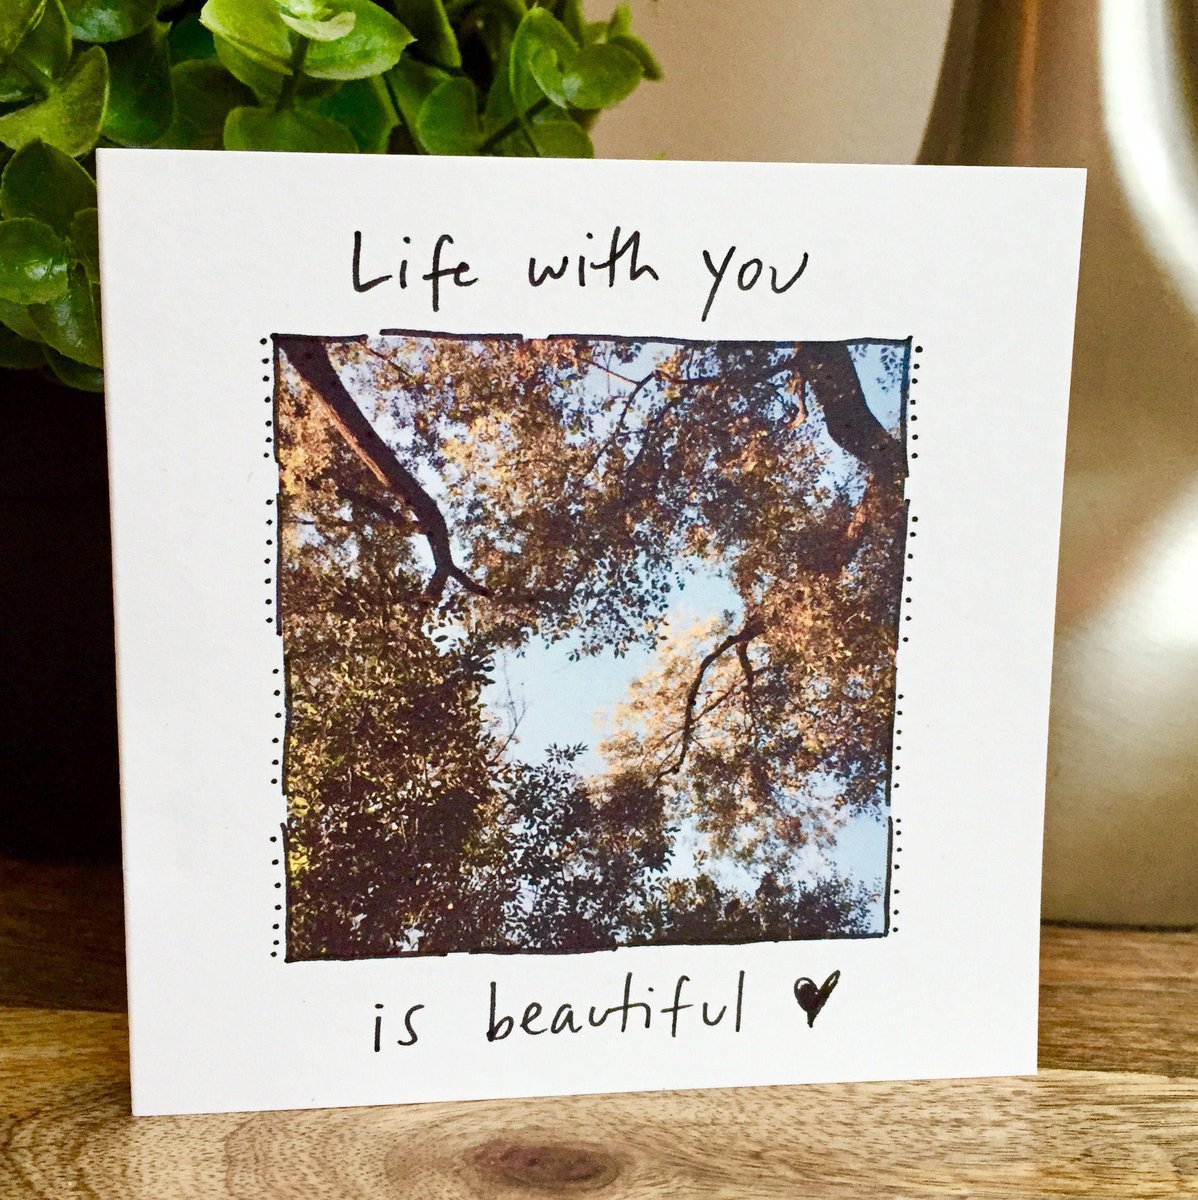 Excited to share the latest addition to my #etsy shop: Life is beautiful card, nature lover card, One Year Anniversary Card for husband, Paper Anniversary, anniversary card wife, 1st anniversary https://t.co/KFSPtJd6LU #papergoods #naturelovercard #treecard #lifeisbeau https://t.co/BSUr7ahiFK